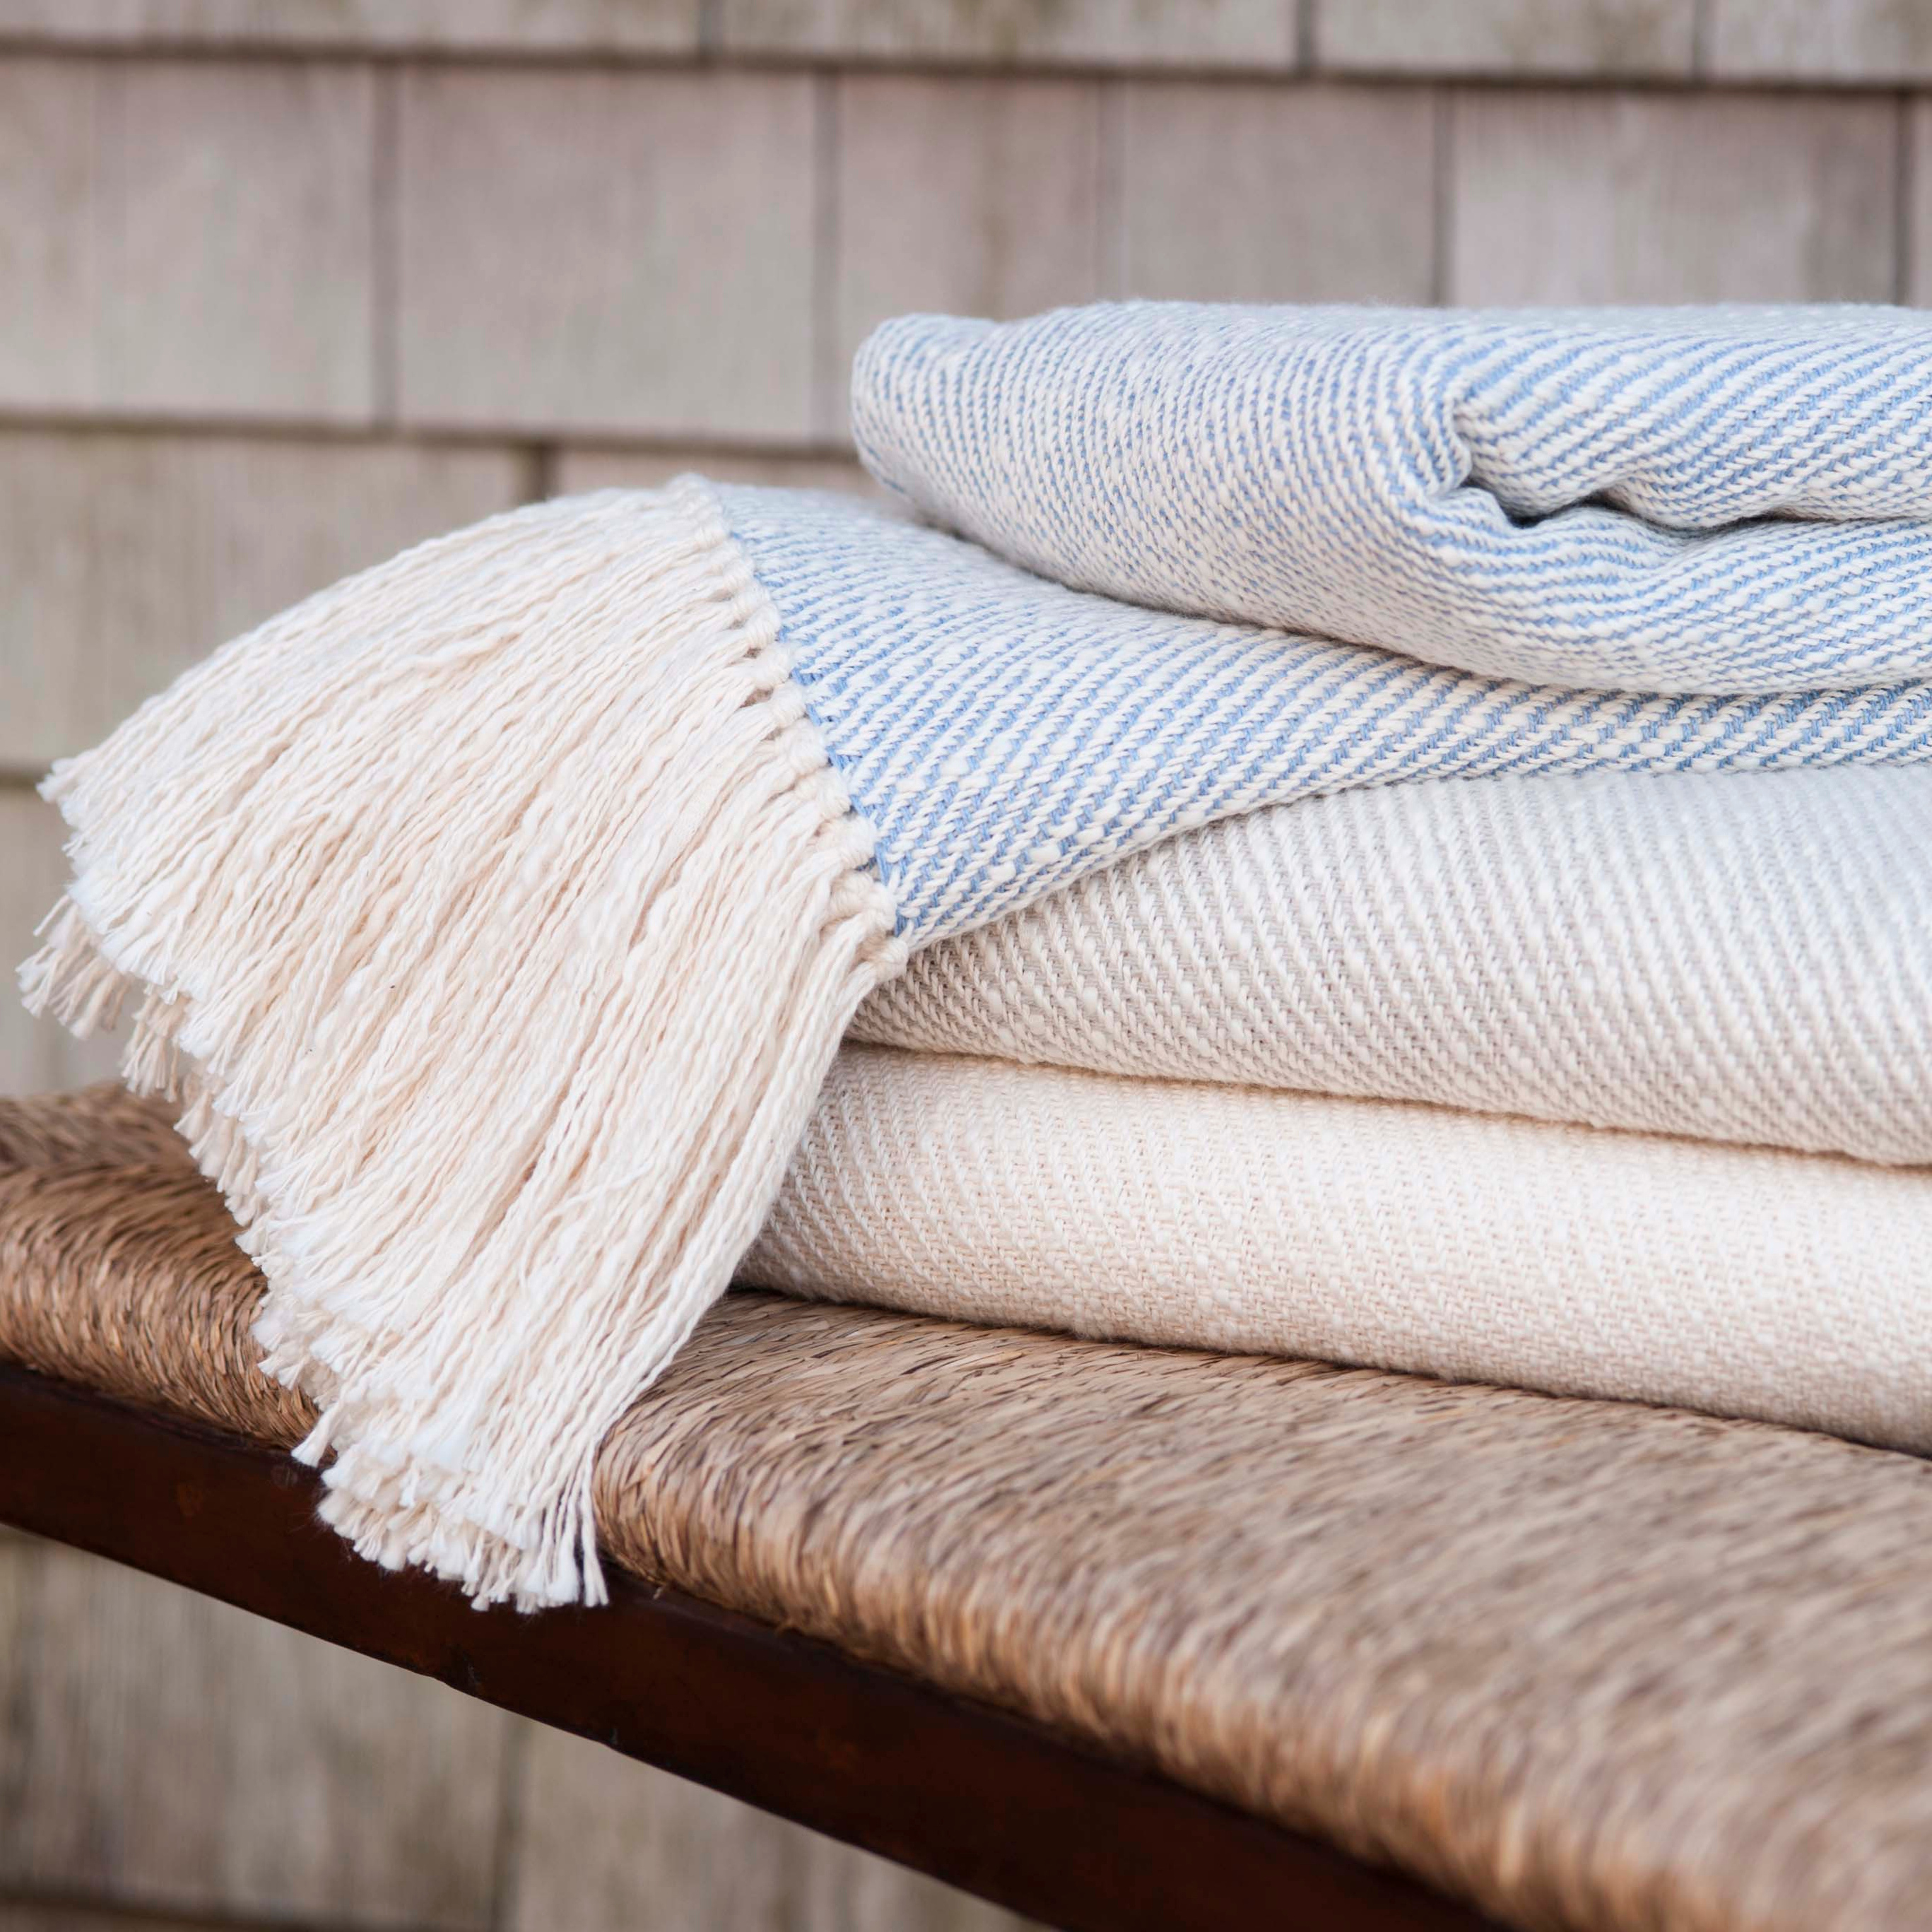 Cotton Throws Handwoven Cotton Throws Paddock Post